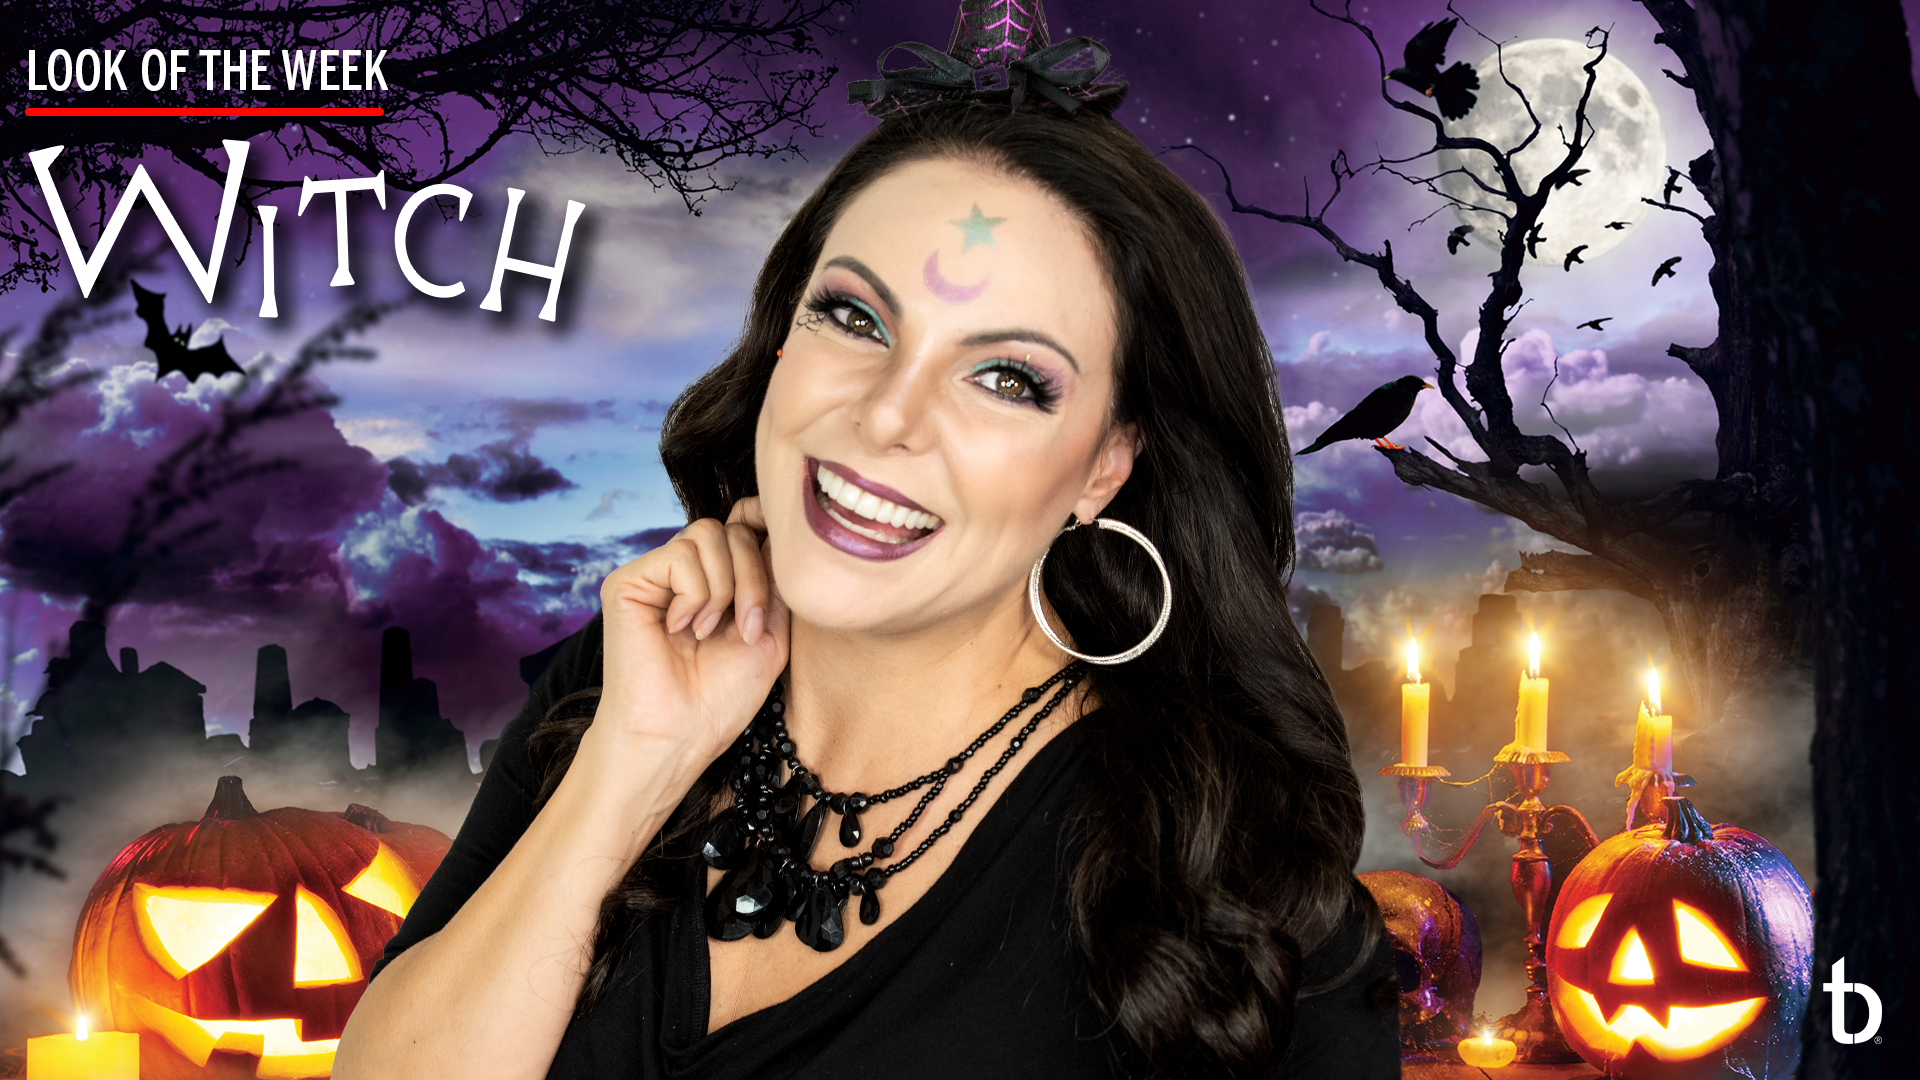 Laura Hunter Look of the Week - Witch